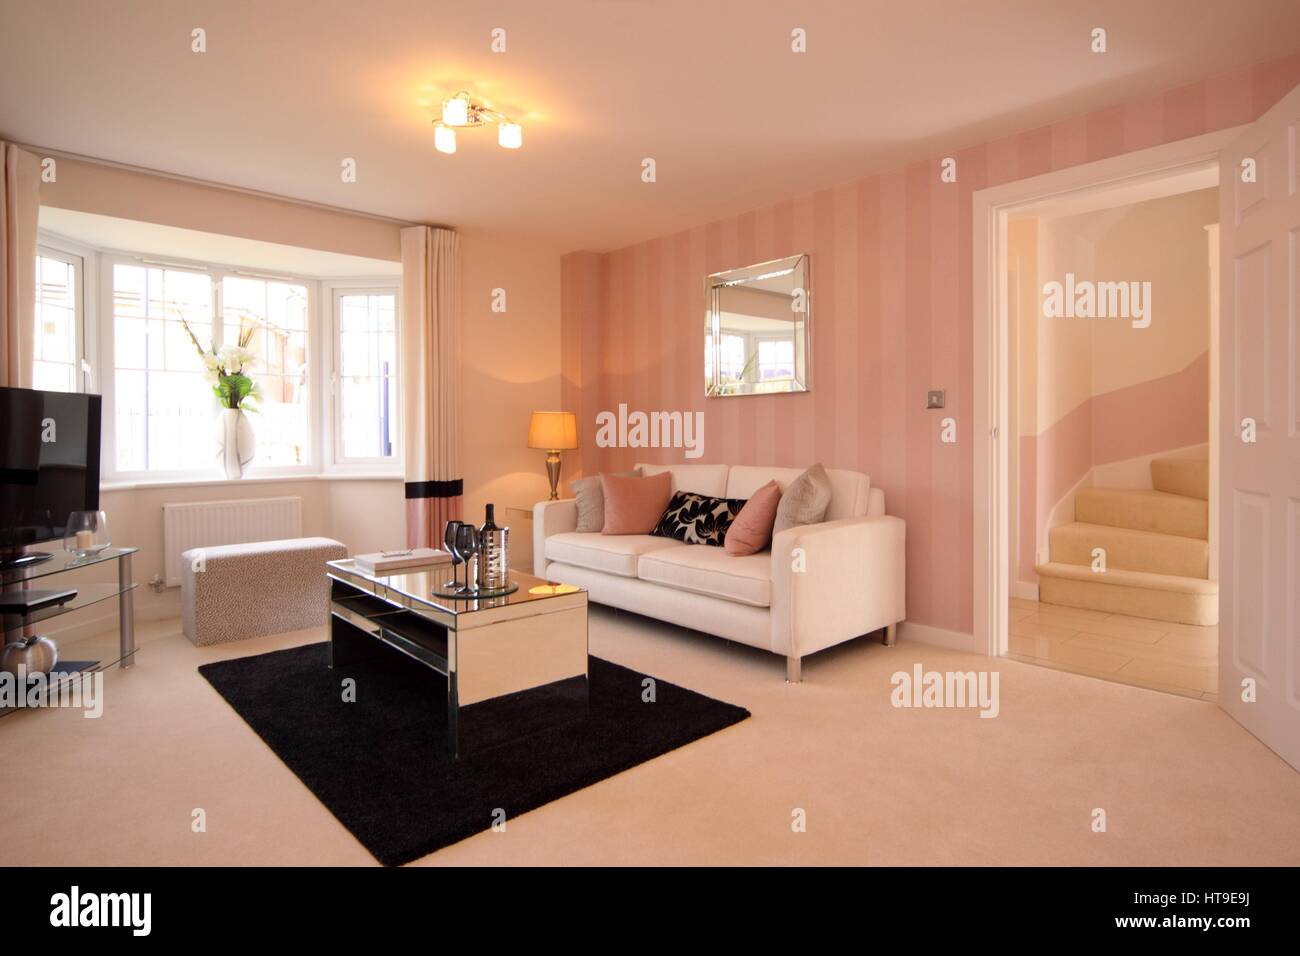 Home Interior Modern Lounge New Build Living Room Pink Cream Stock Photo Alamy